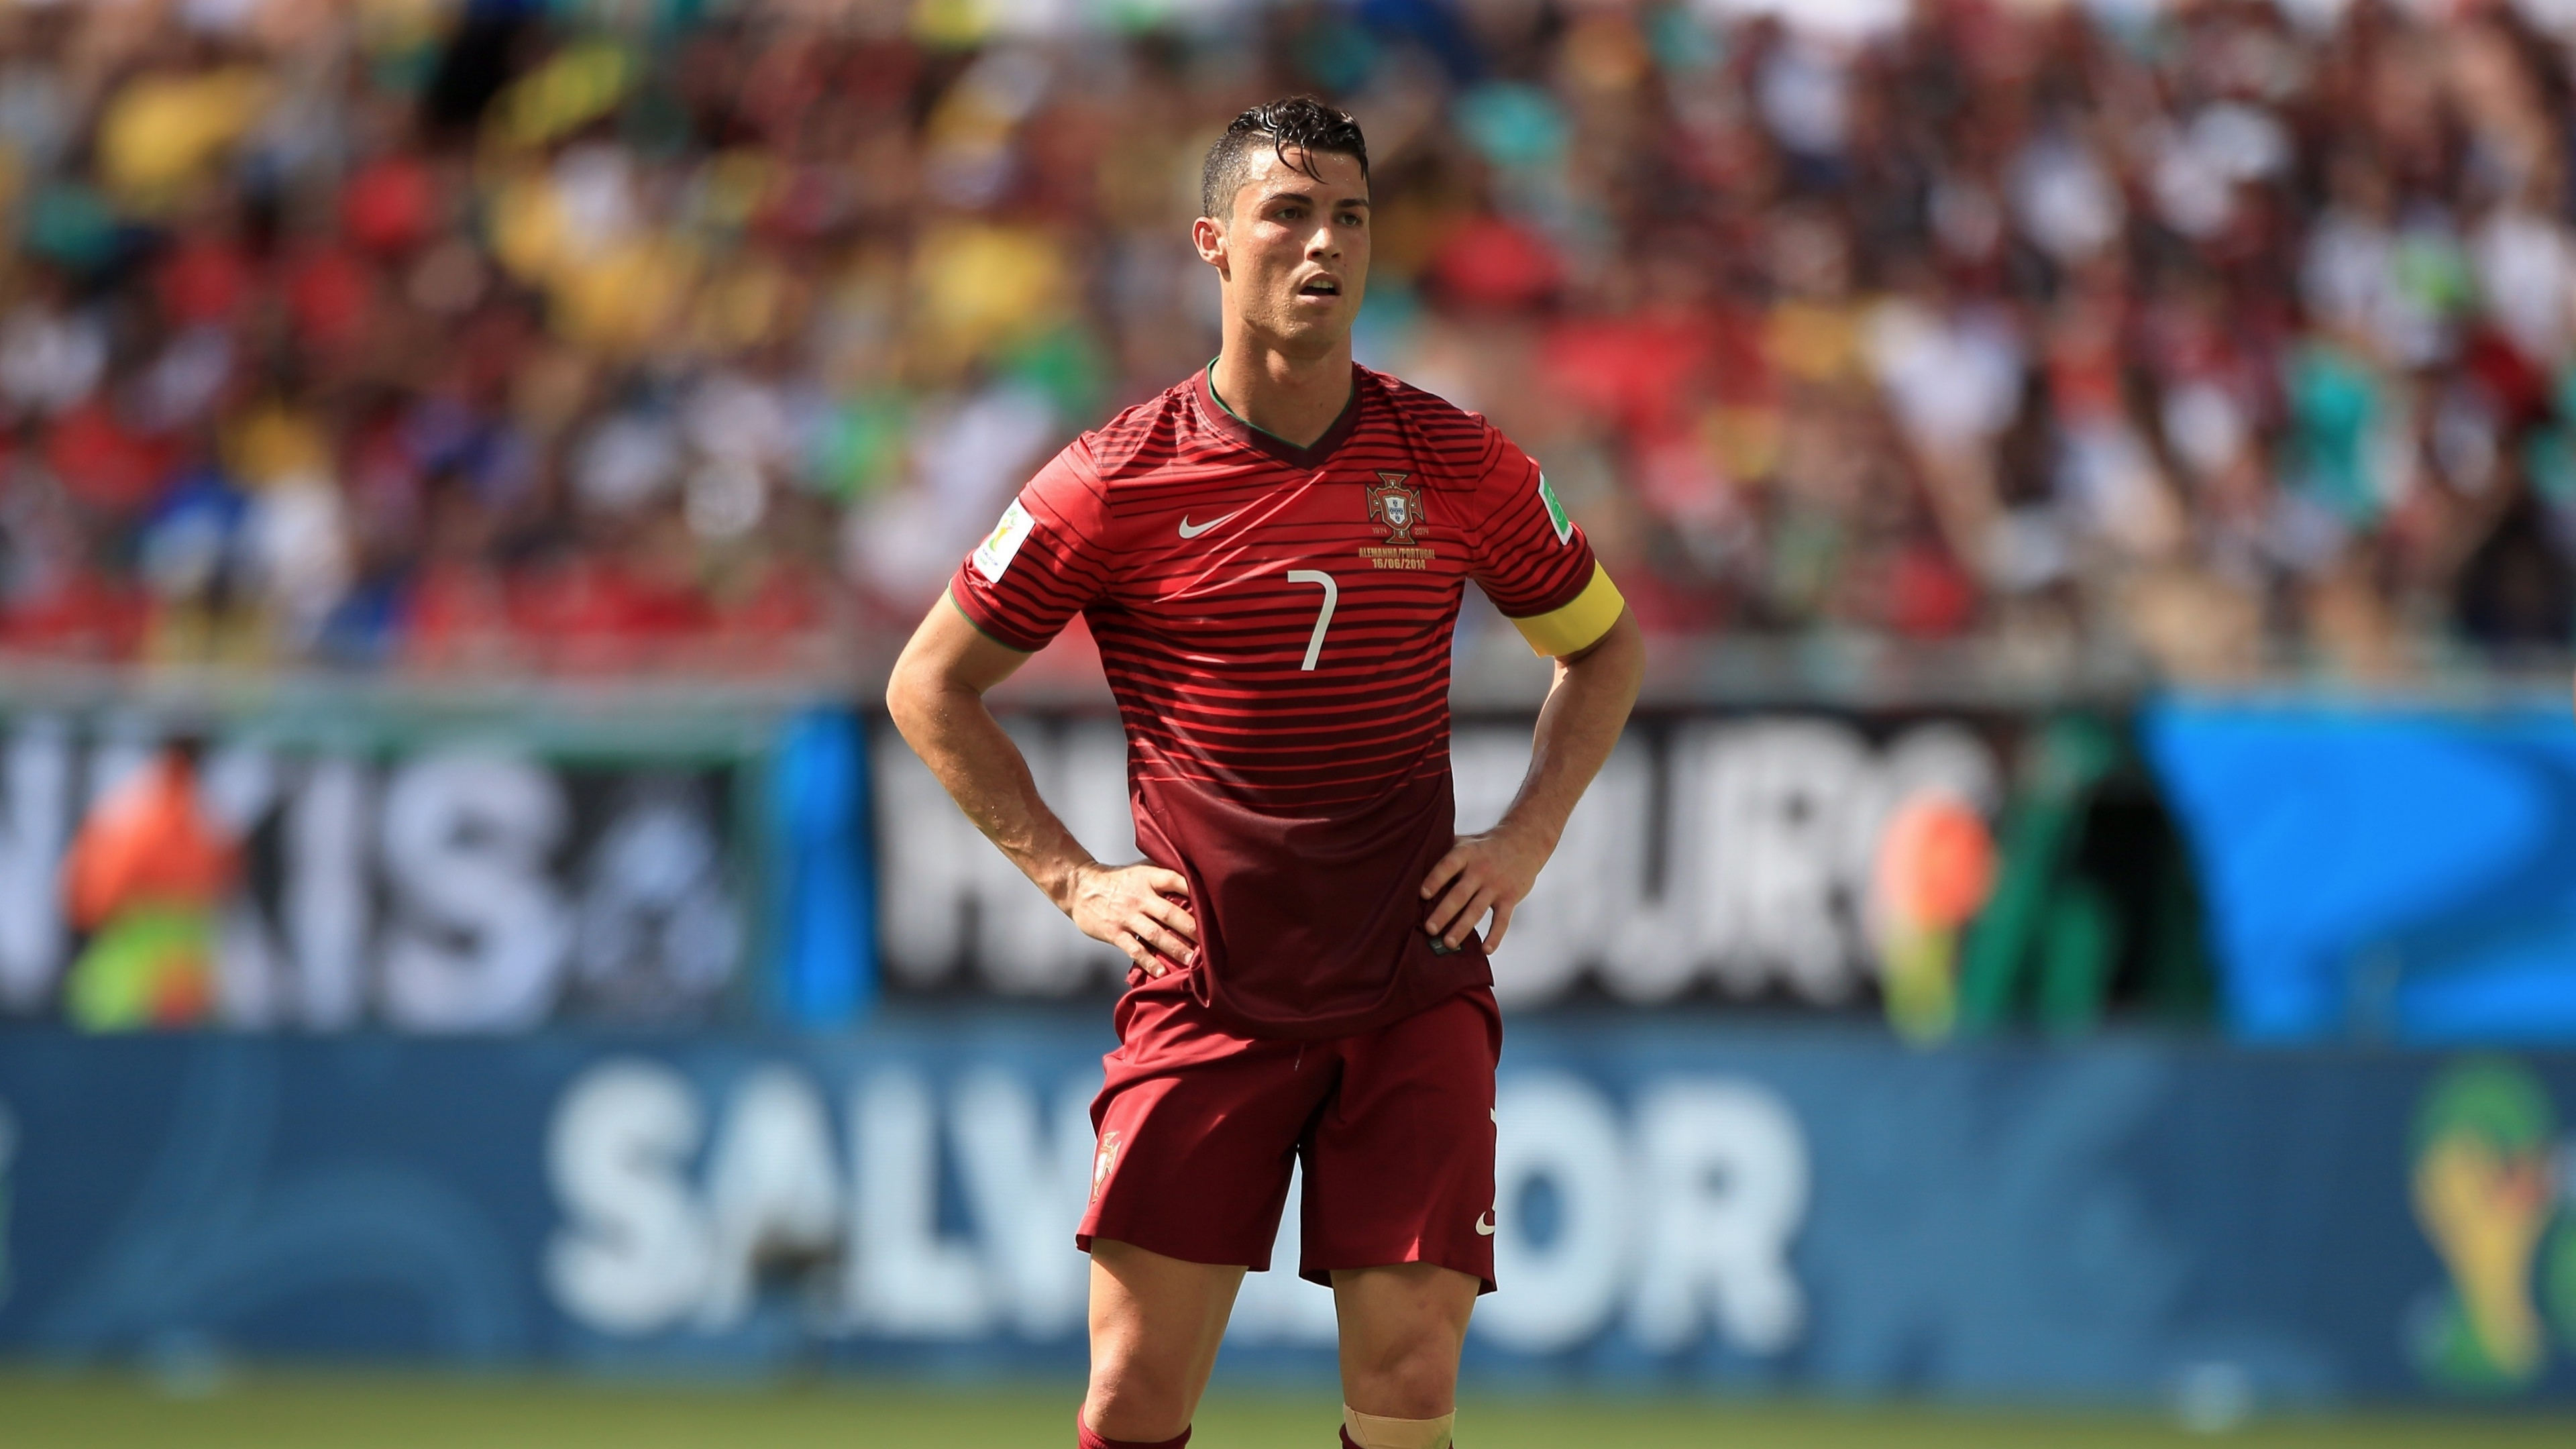 Free Download Cristiano Ronaldo Standing Ultra Hd Wallpaper Uhd Wallpapersnet 3840x2160 For Your Desktop Mobile Tablet Explore 25 Cristiano Ronaldo Uhd Wallpapers Cristiano Ronaldo Uhd Wallpapers Cristiano Ronaldo Wallpapers